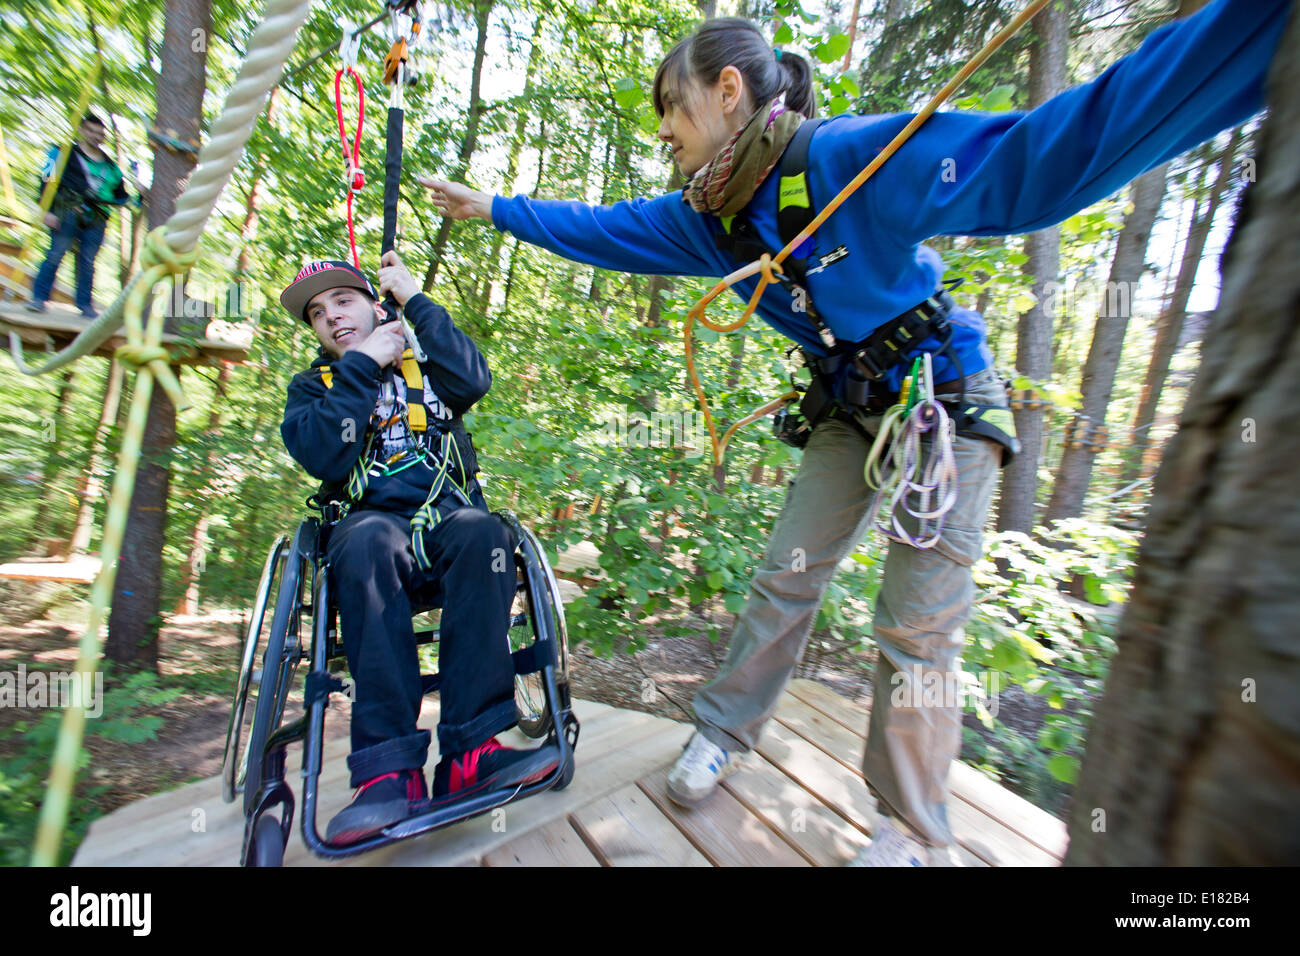 Schwarzenbruck, Germany. 14th May, 2014. Johannes Waltinger soars along a zip line in his wheelchair and is assisted by trainer Andrea Kammerer at the forest ropes course (Waldseilpark) in Schwarzenbruck, Germany, 14 May 2014. Two high ropes courses in Germany now offer their experience to persons with disabilities, too. This is made possible by specially trained helpers. Photo: Daniel Karmann/dpa/Alamy Live News - Stock Image